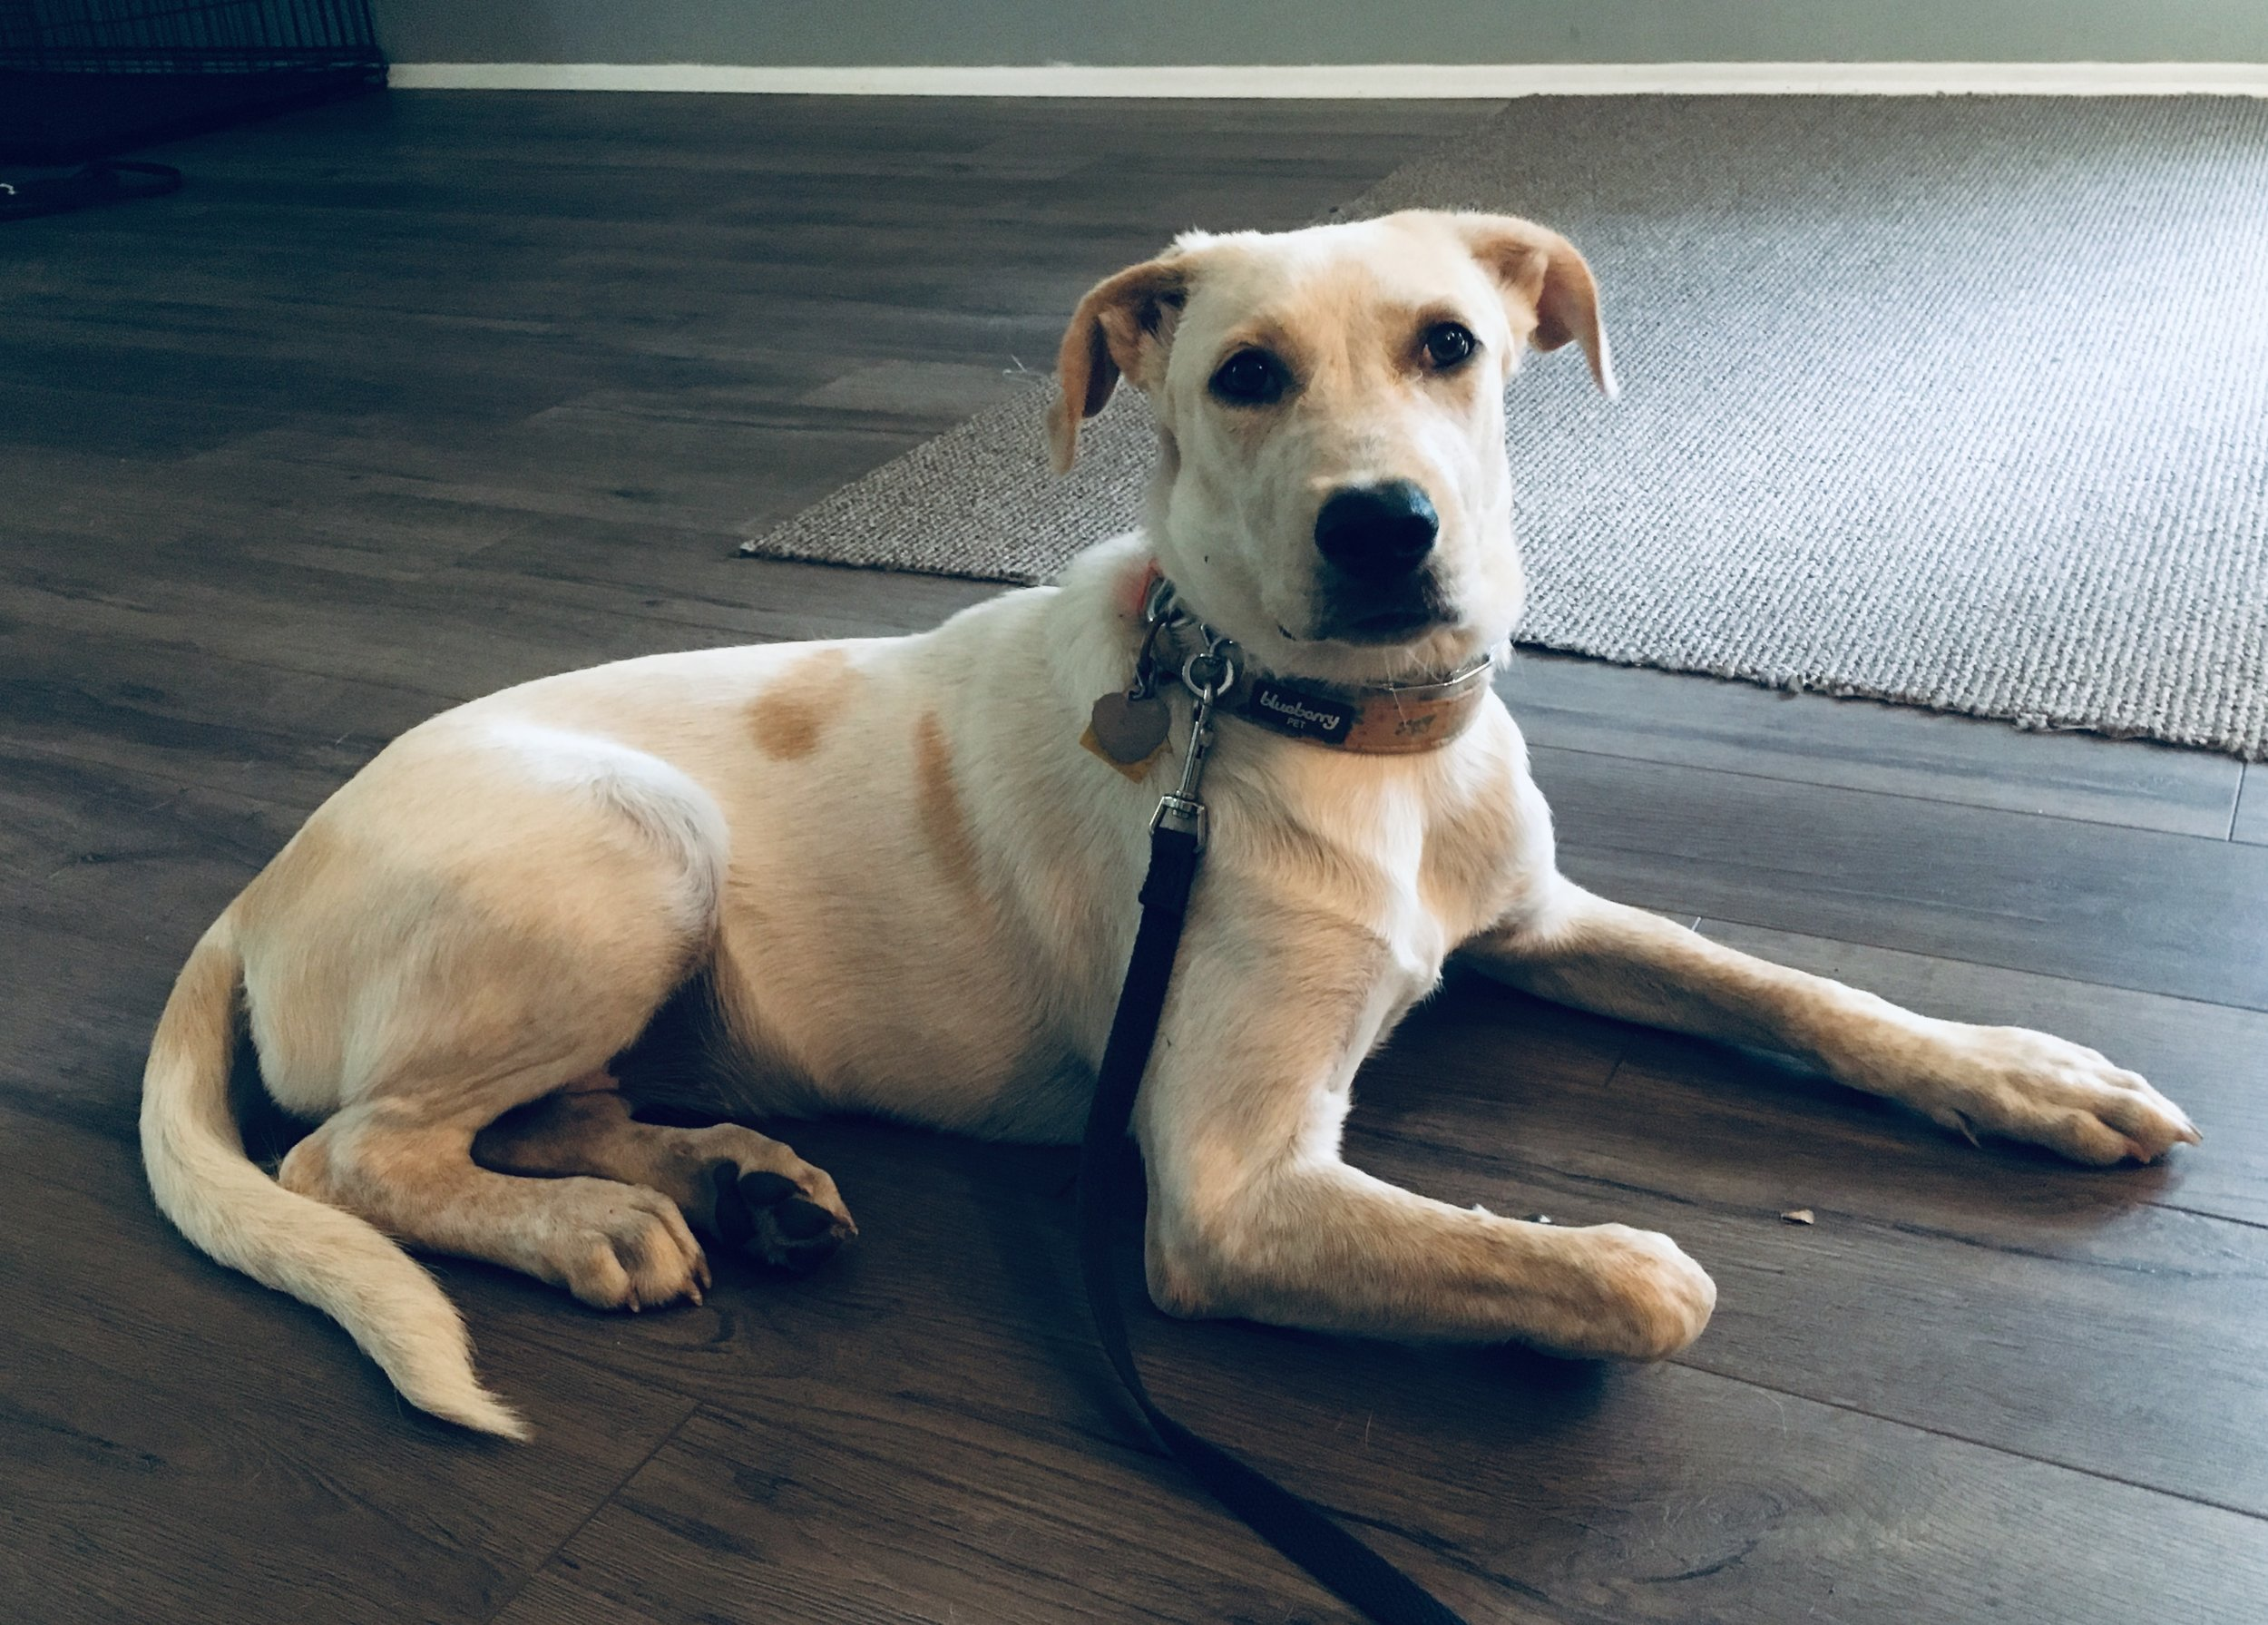 Koda - I have a 6 month old lab mix who was way out of control. As a student, I needed her to be calm around the house so I could do my school work. Sue was a life saver! I can now work, cook, or clean while Koda focuses on her job. Our life has been brought back to order!Cristal Leon, San Marcos, TX